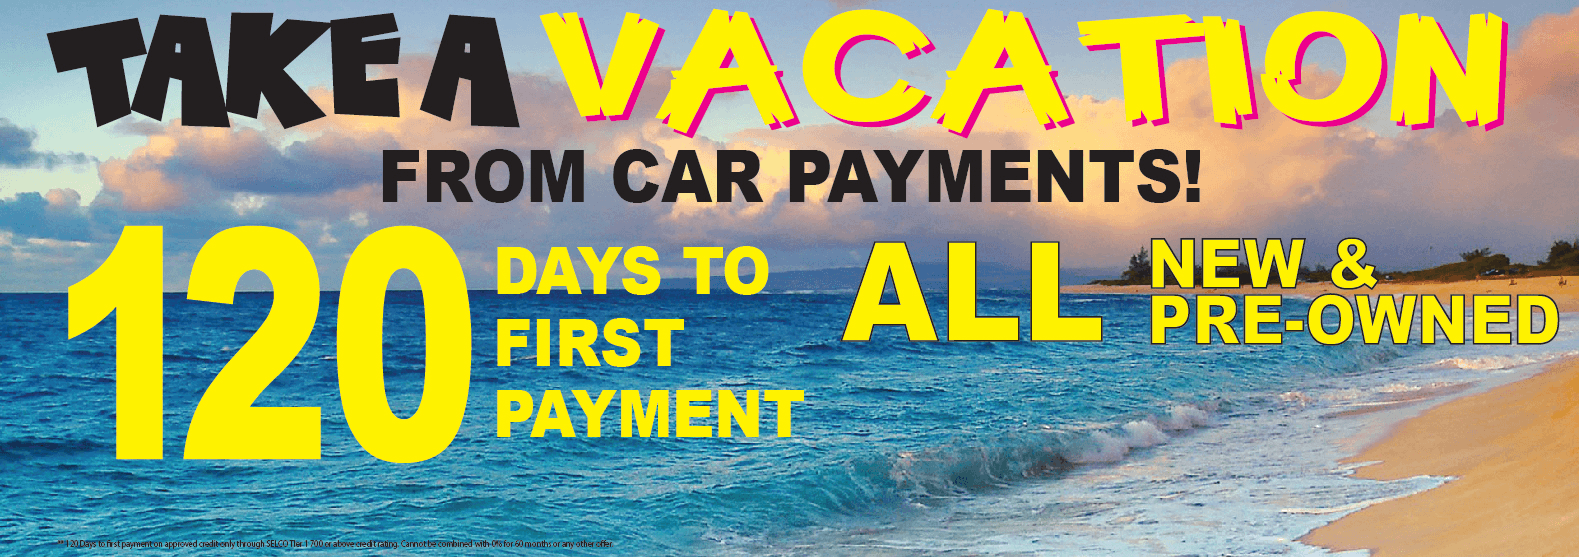 Take a vacation from interest and car payments at Capitol Toyota in Salem, OR